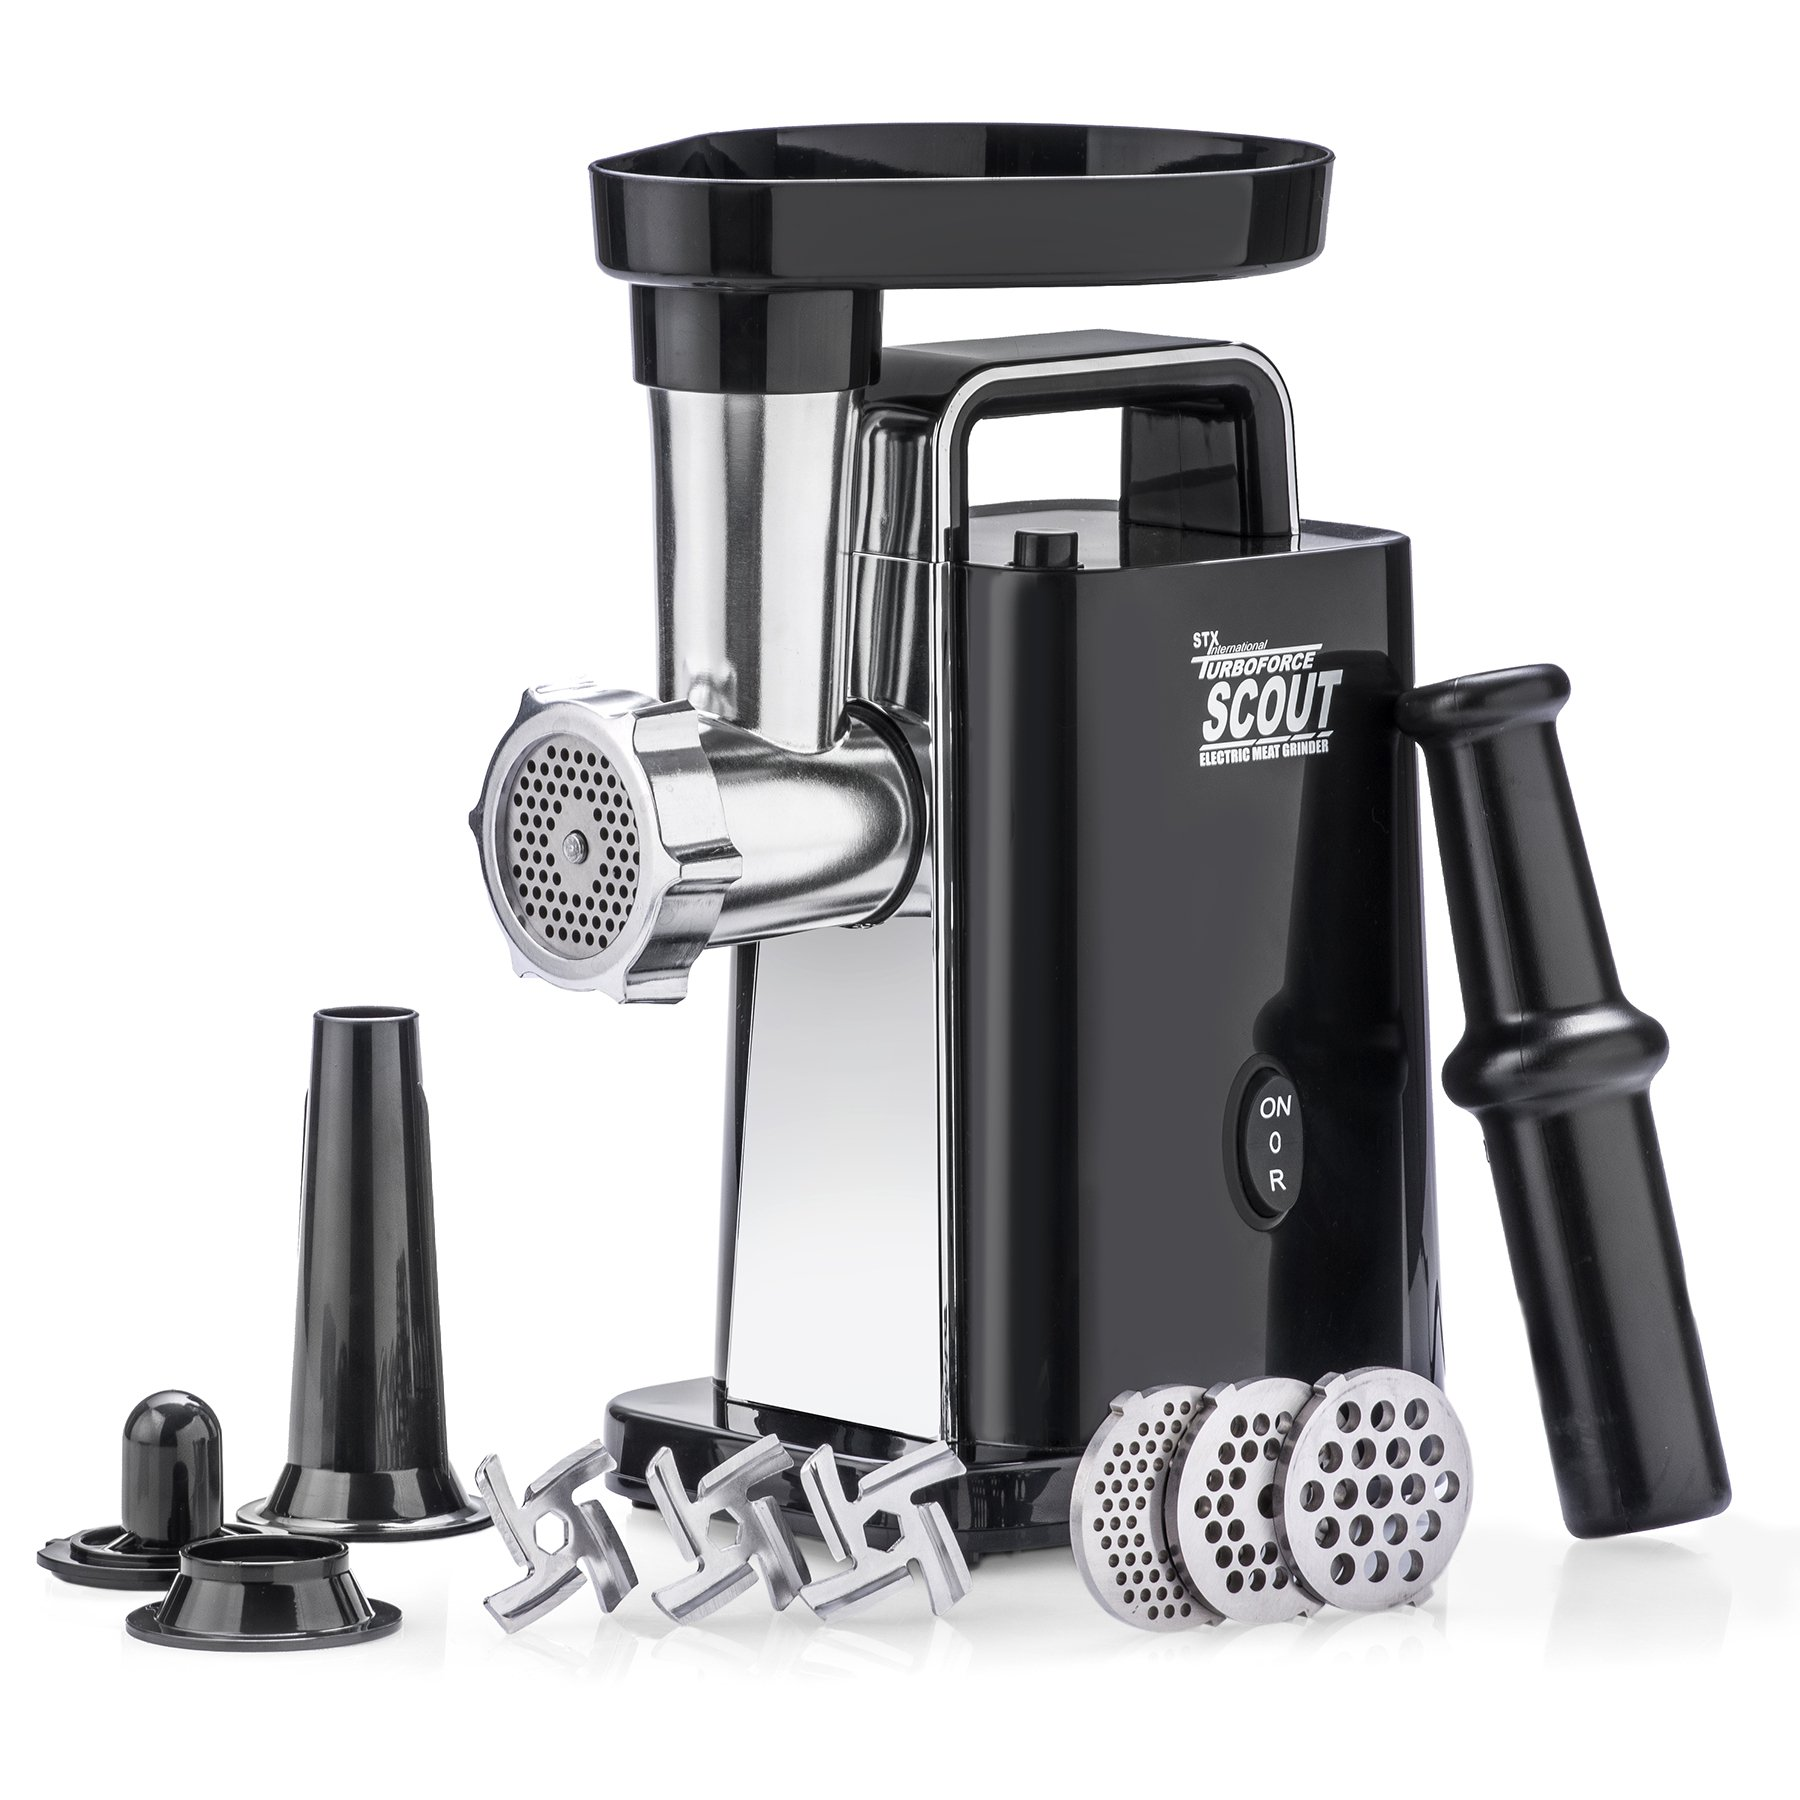 STX Turboforce Scout Electric Meat Grinder & Sausage Stuffer - Grinds 60 Lbs Plus Per Hour - 3 Grinding Plates, 3 S/S Blades, Sausage Stuffing Tube & Kubbe Maker - ''The Compact Titan of Meat Grinders''! by STX INTERNATIONAL